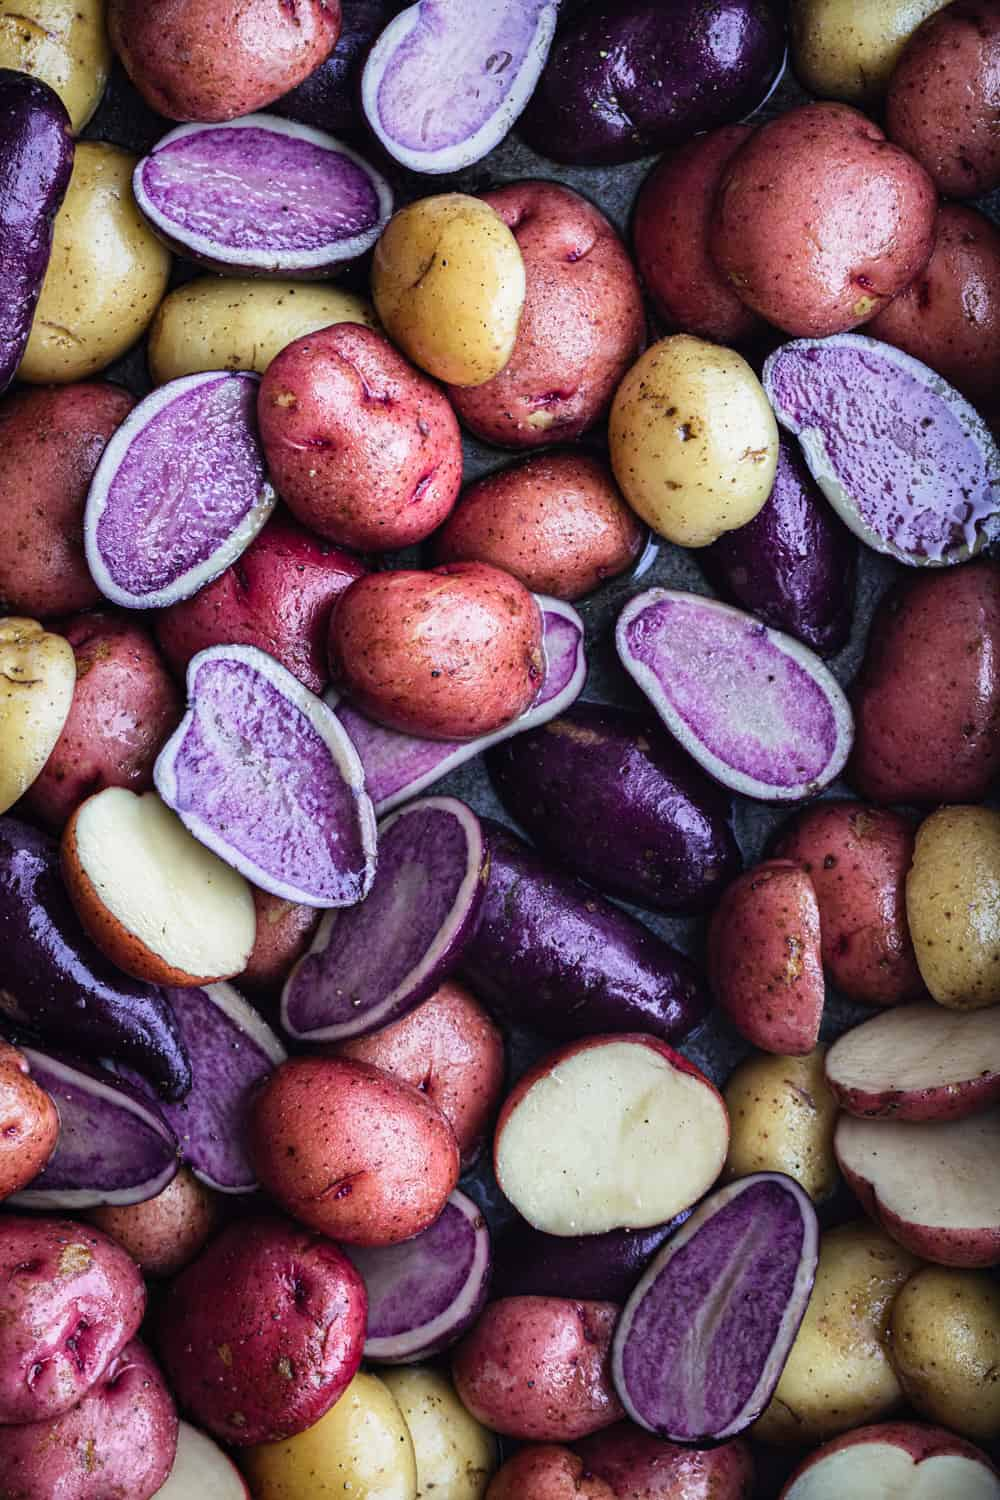 Purple, red and white new potatoes cut in half; on a baking sheet, overhead shot.